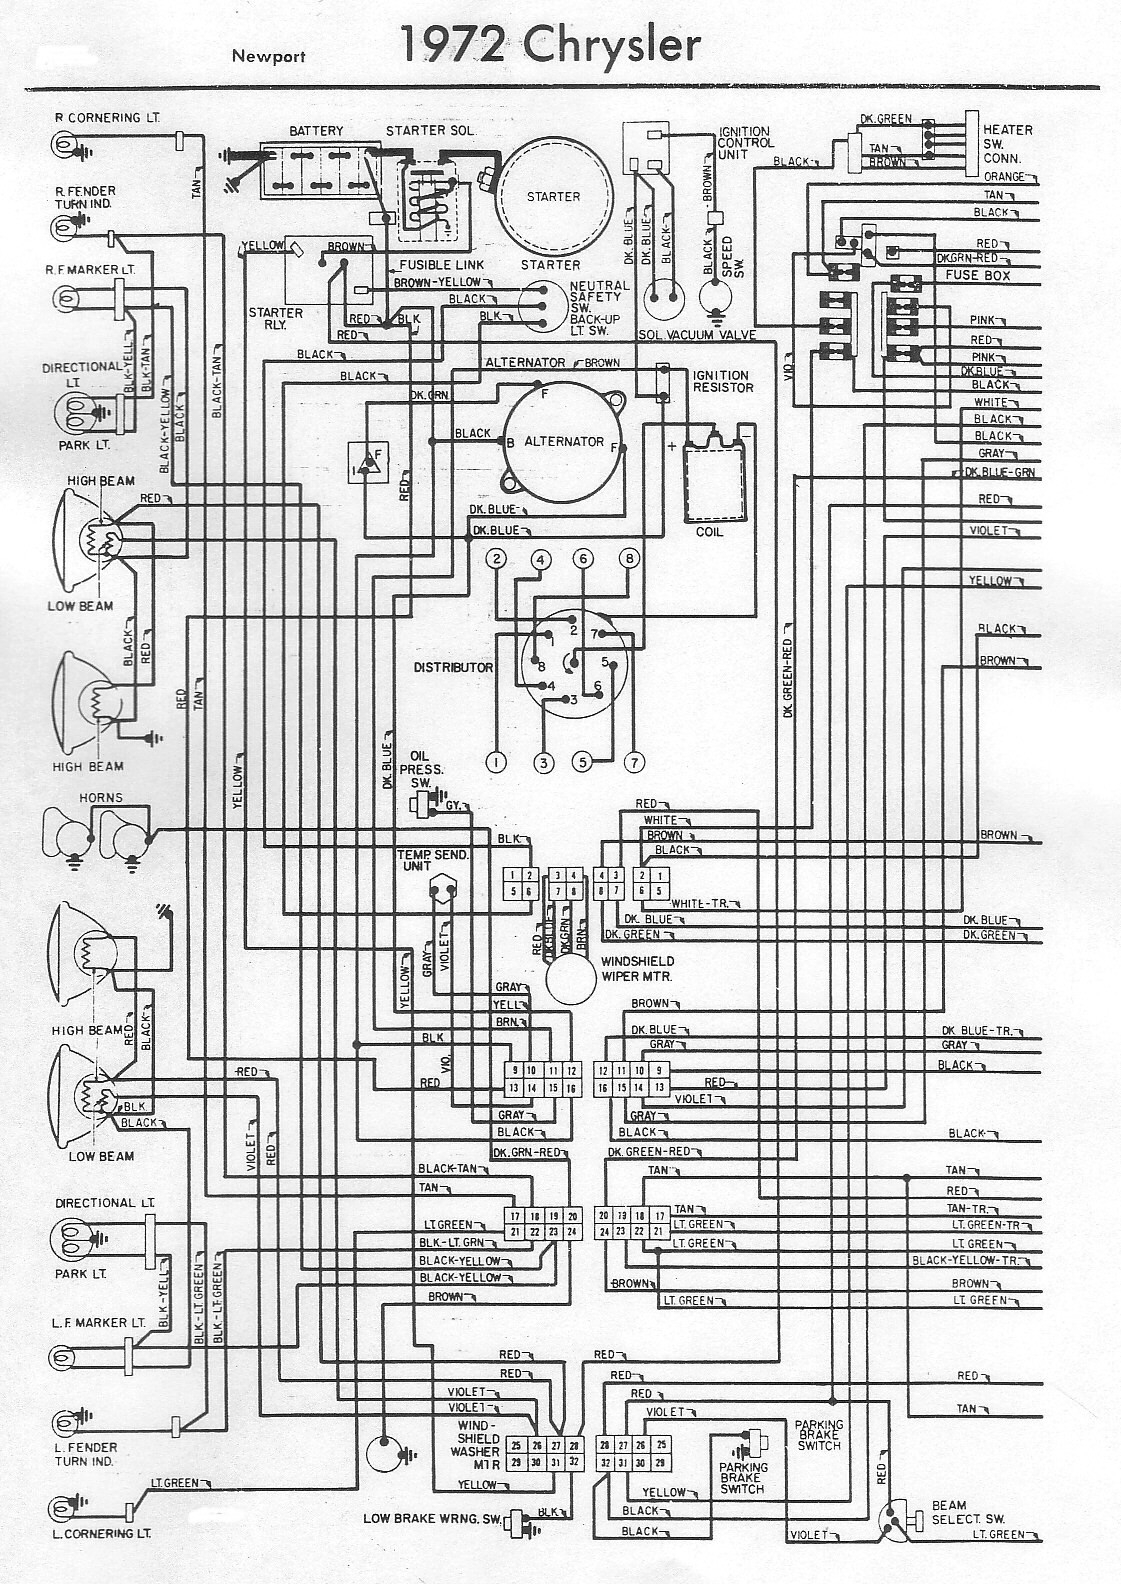 Leyland Roadrunner Wiring Diagram Simple Electronic Circuits 1969 Exelent Crest Electrical Circuit Rh Suaiphone Org Road Runner Anatomy Bird